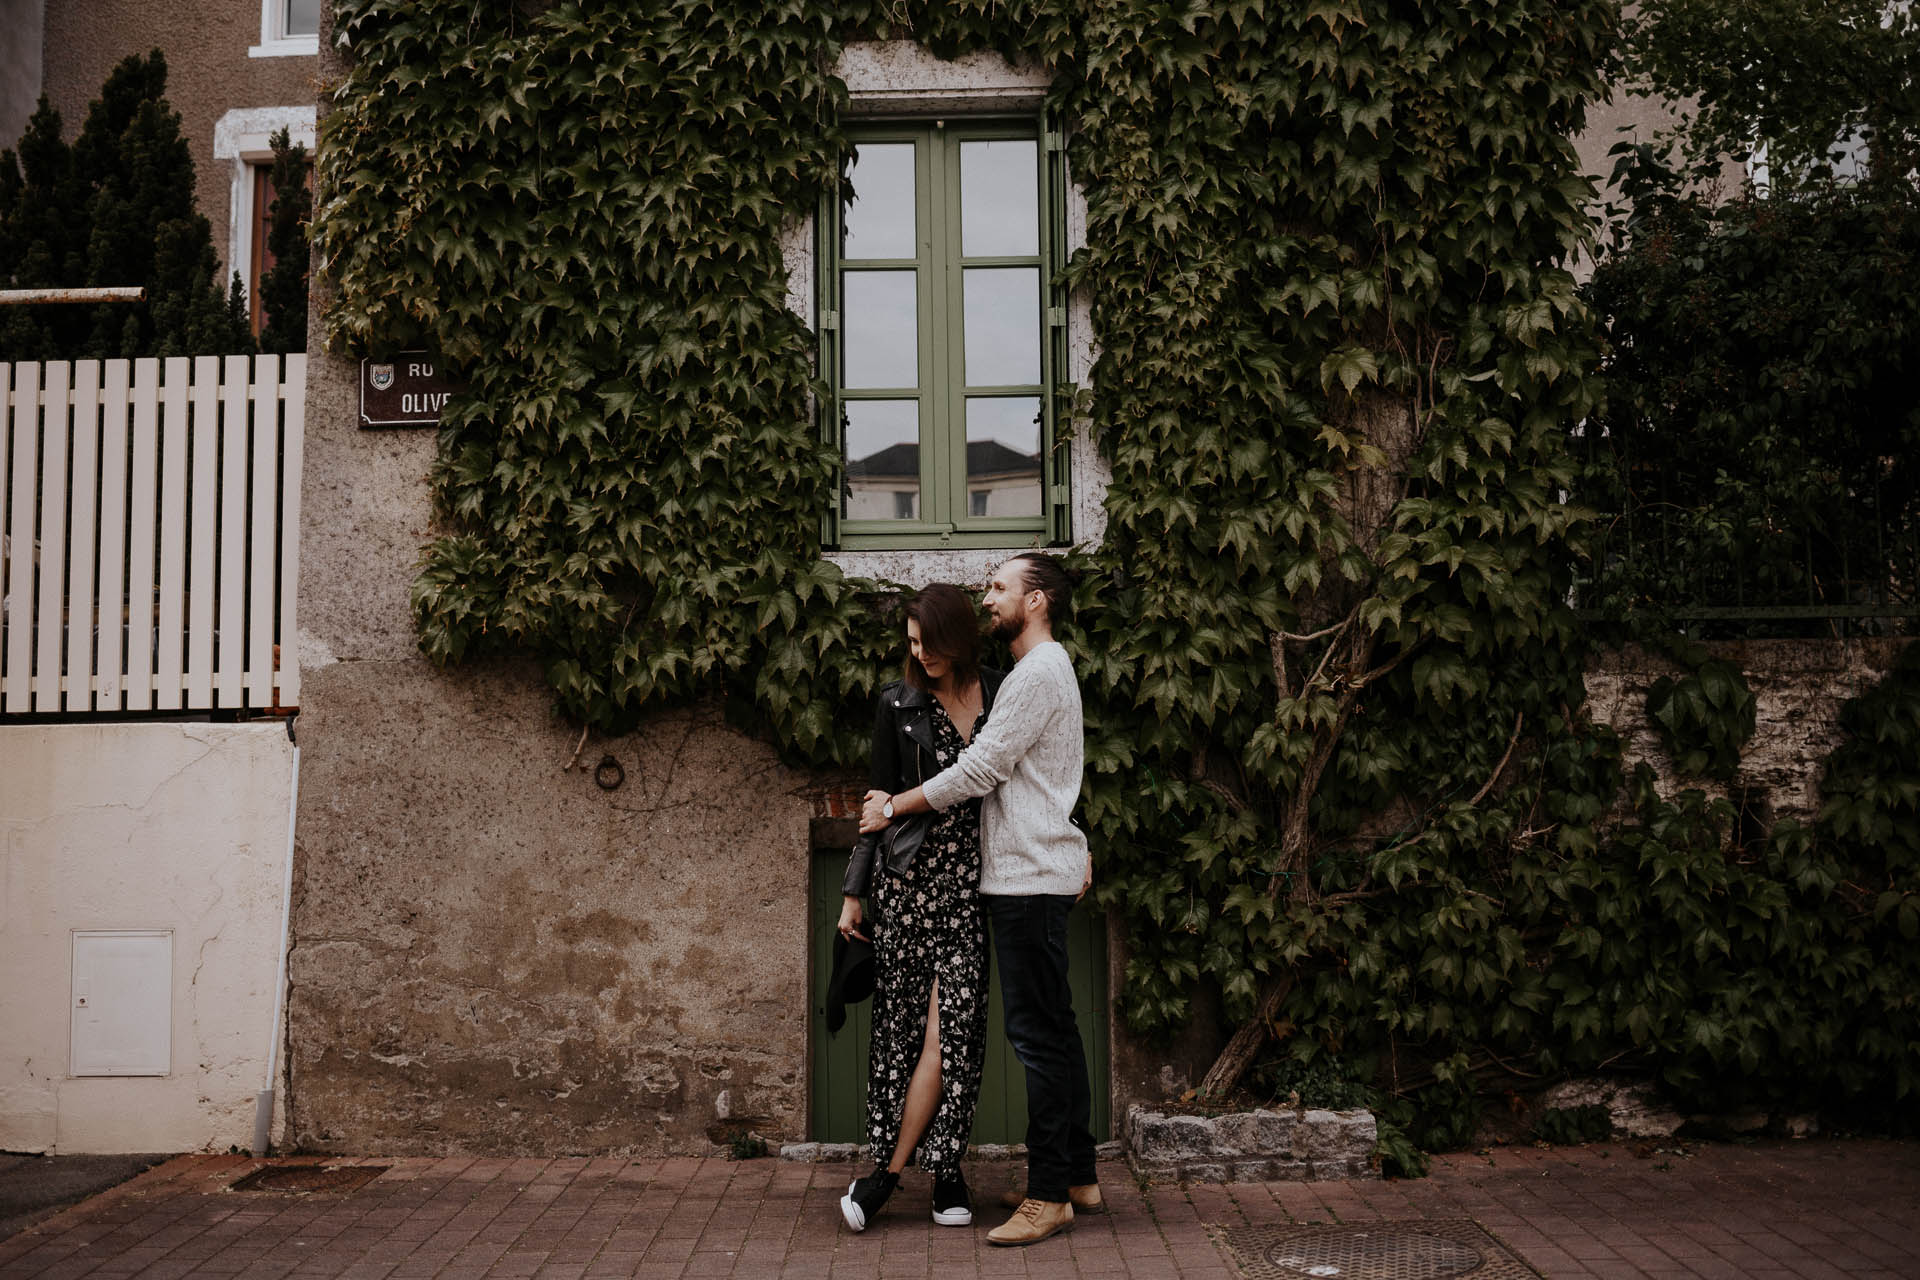 engagement_session_trentemoult_flavie_nelly_photographe_nantes-4